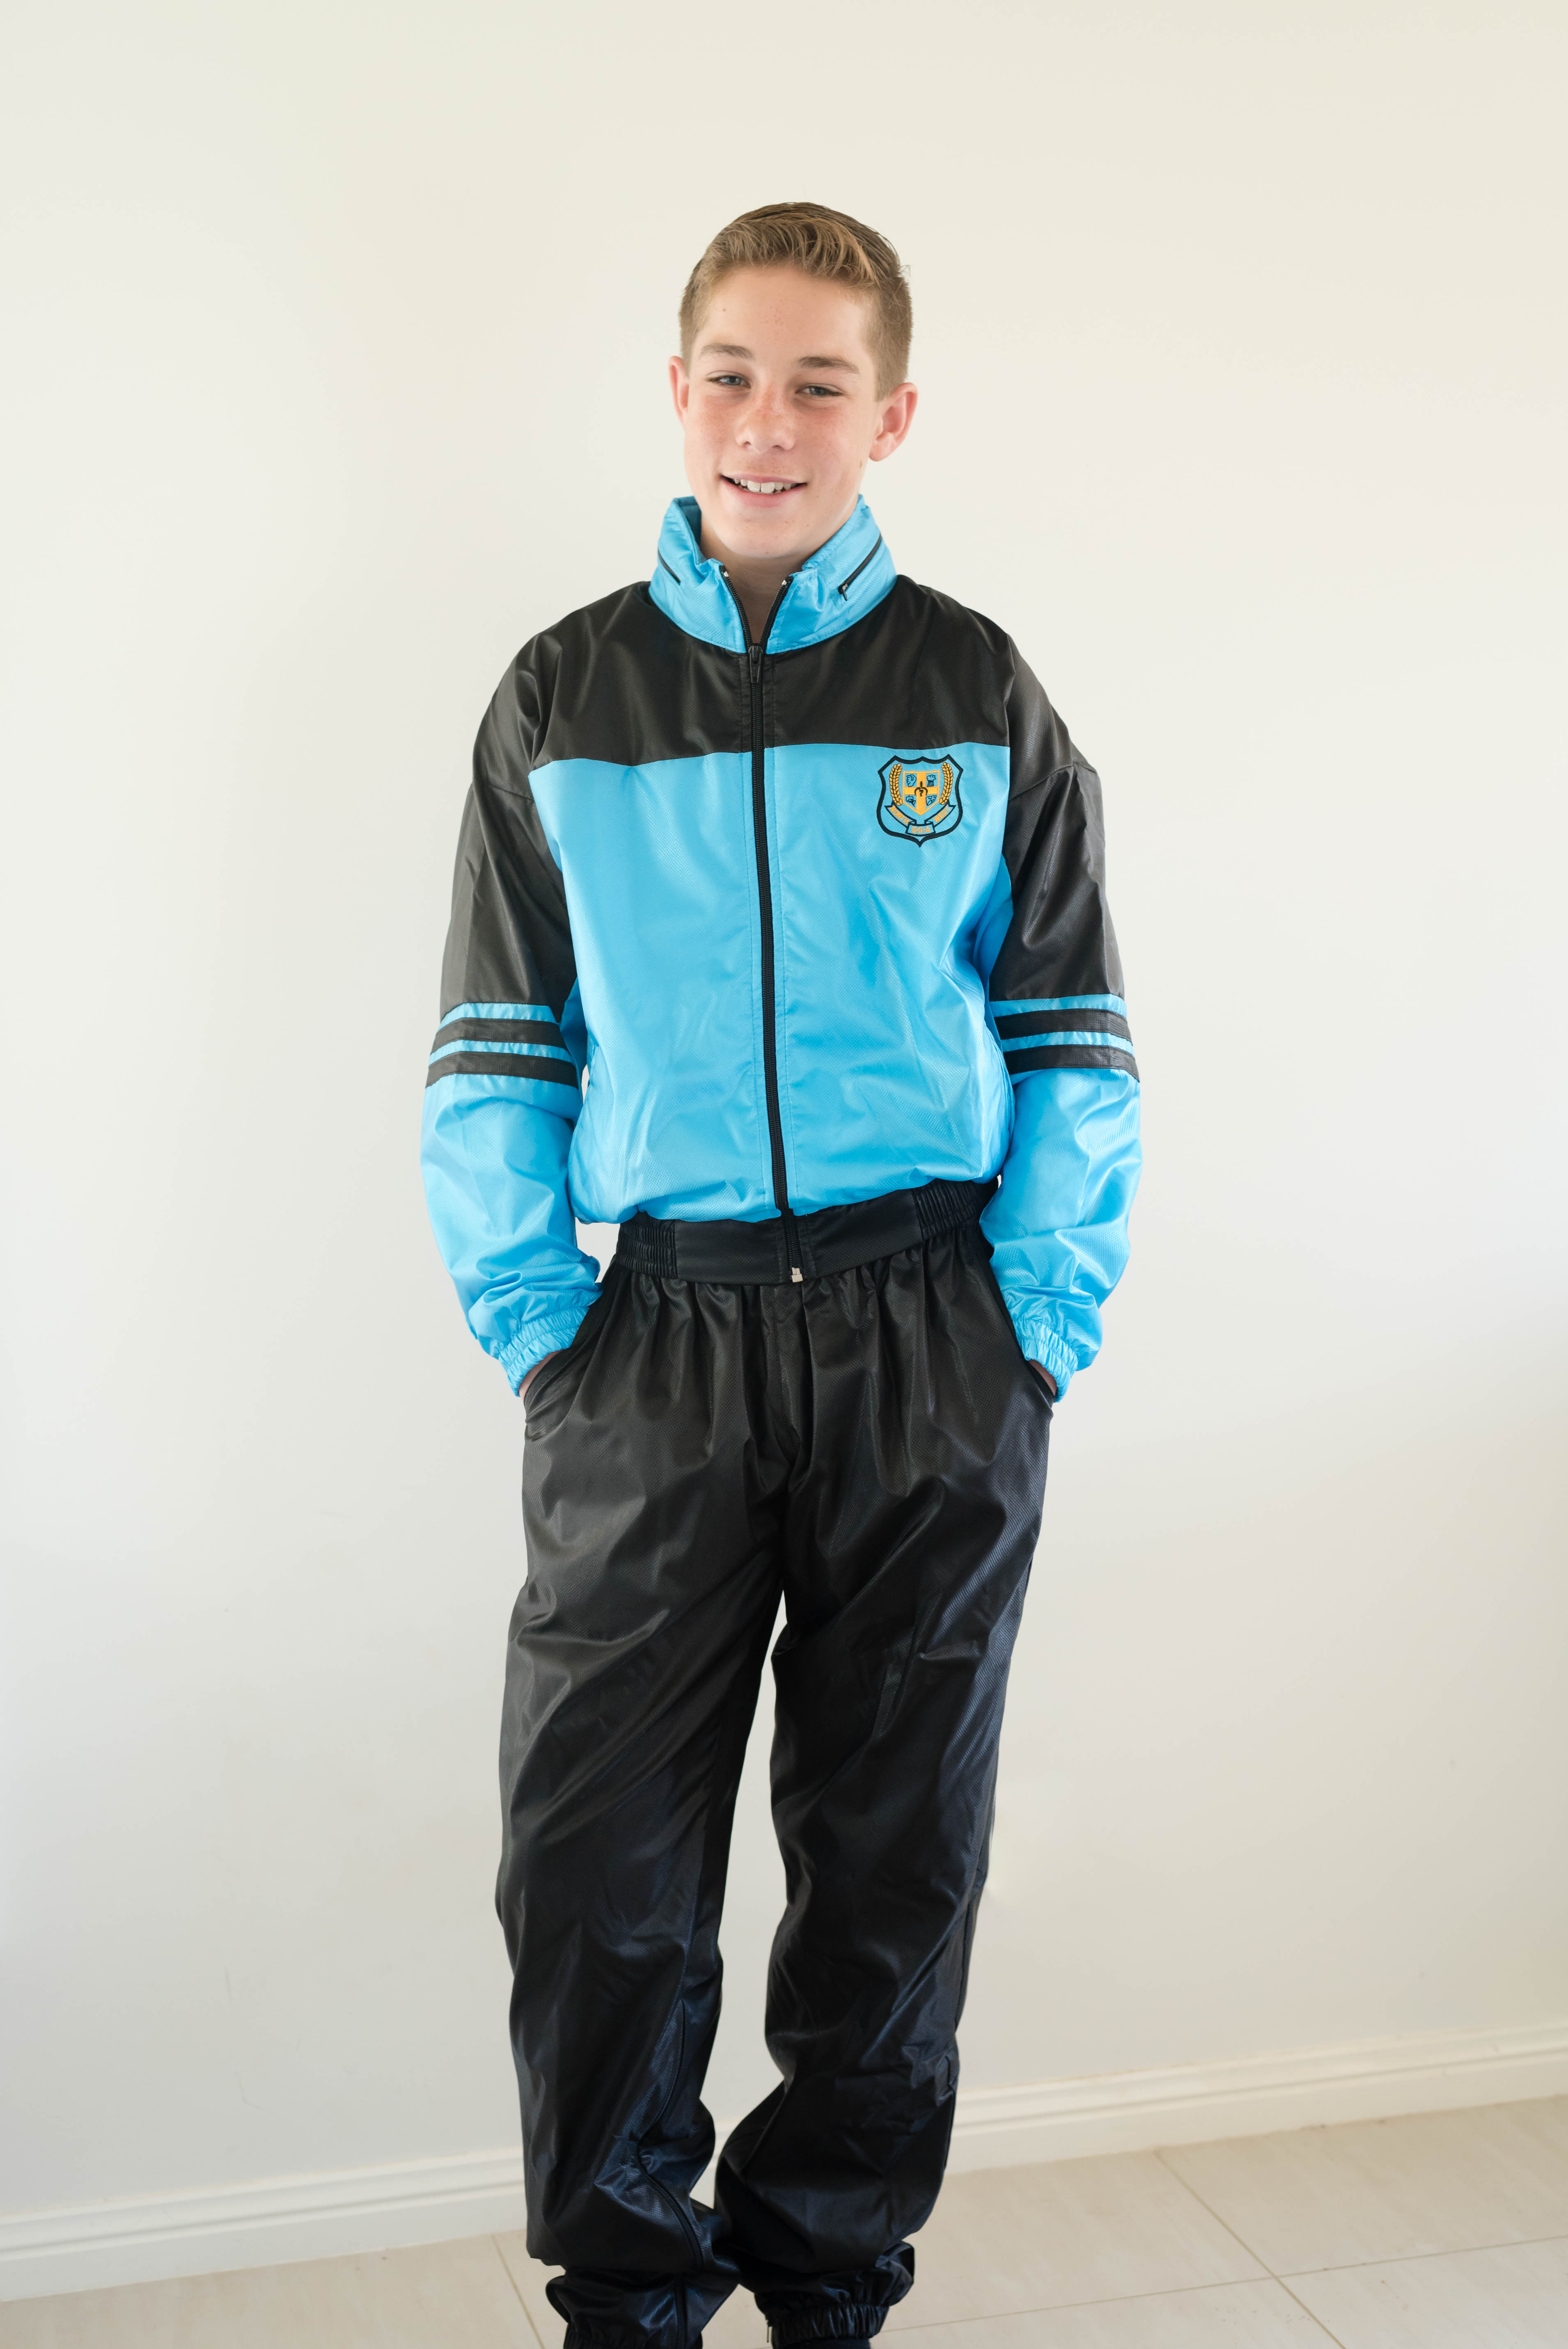 NW rep tracksuit